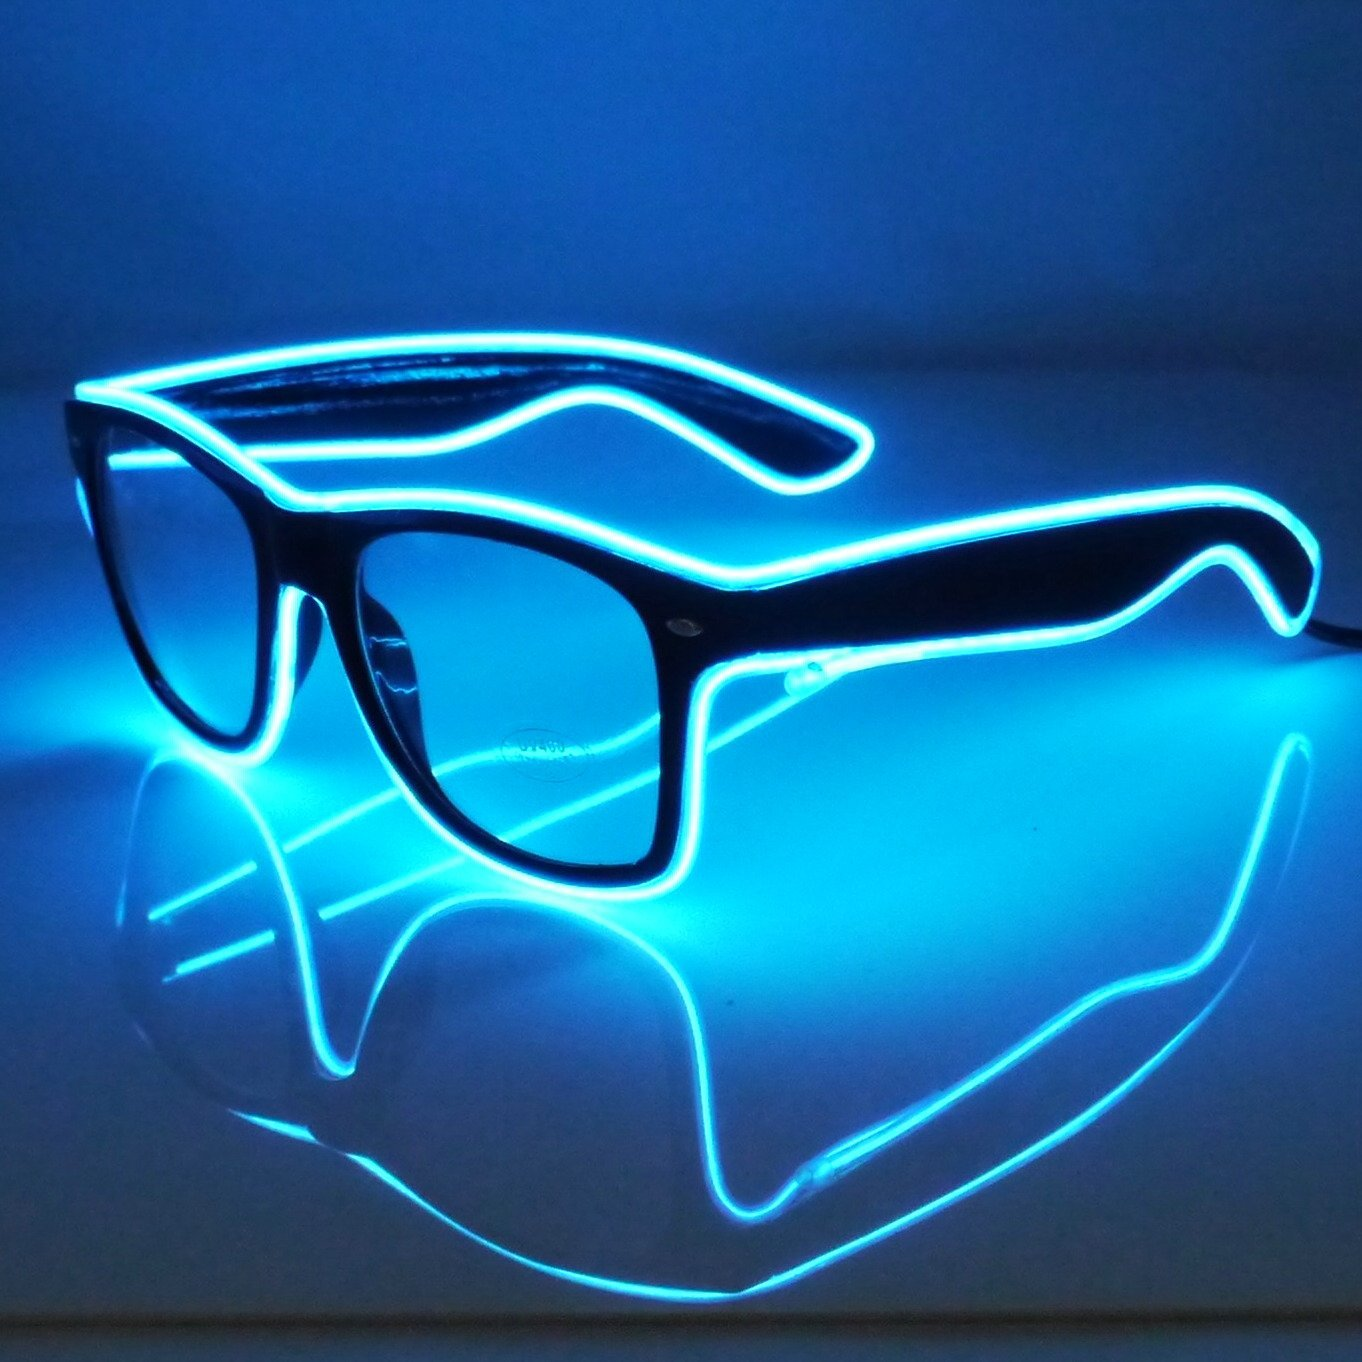 Glow In The Dark Glasses | Got Cash... Buy This! The Unique Online Mall